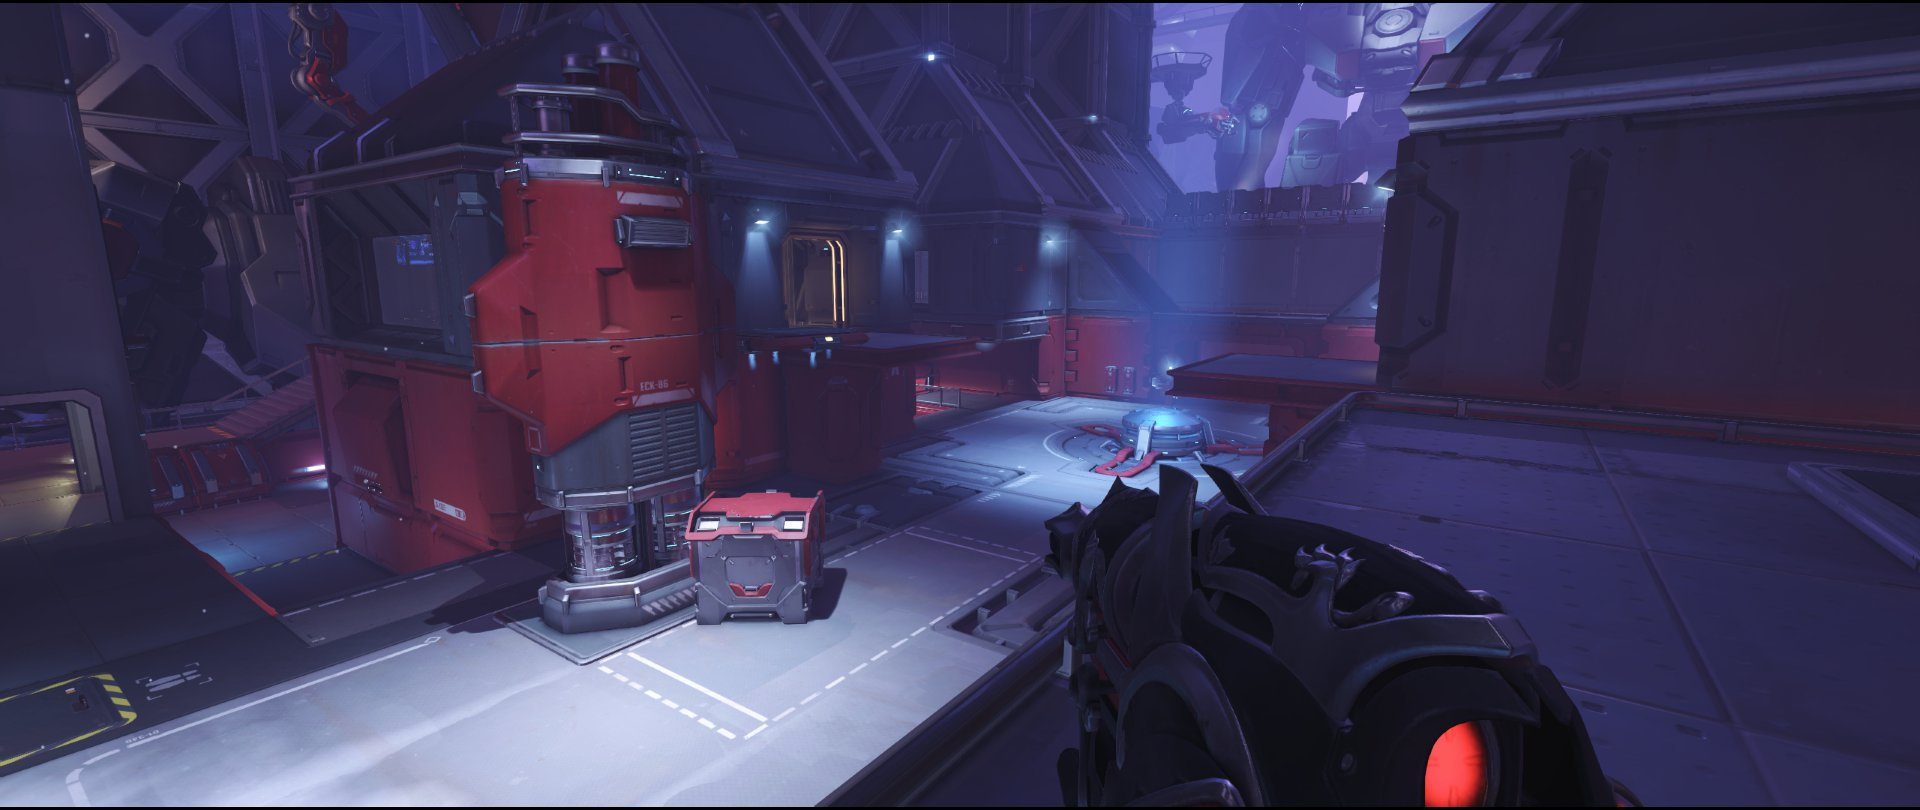 Turbine view attack sniping spot Widowmaker Volskaya Industries Overwatch.jpg